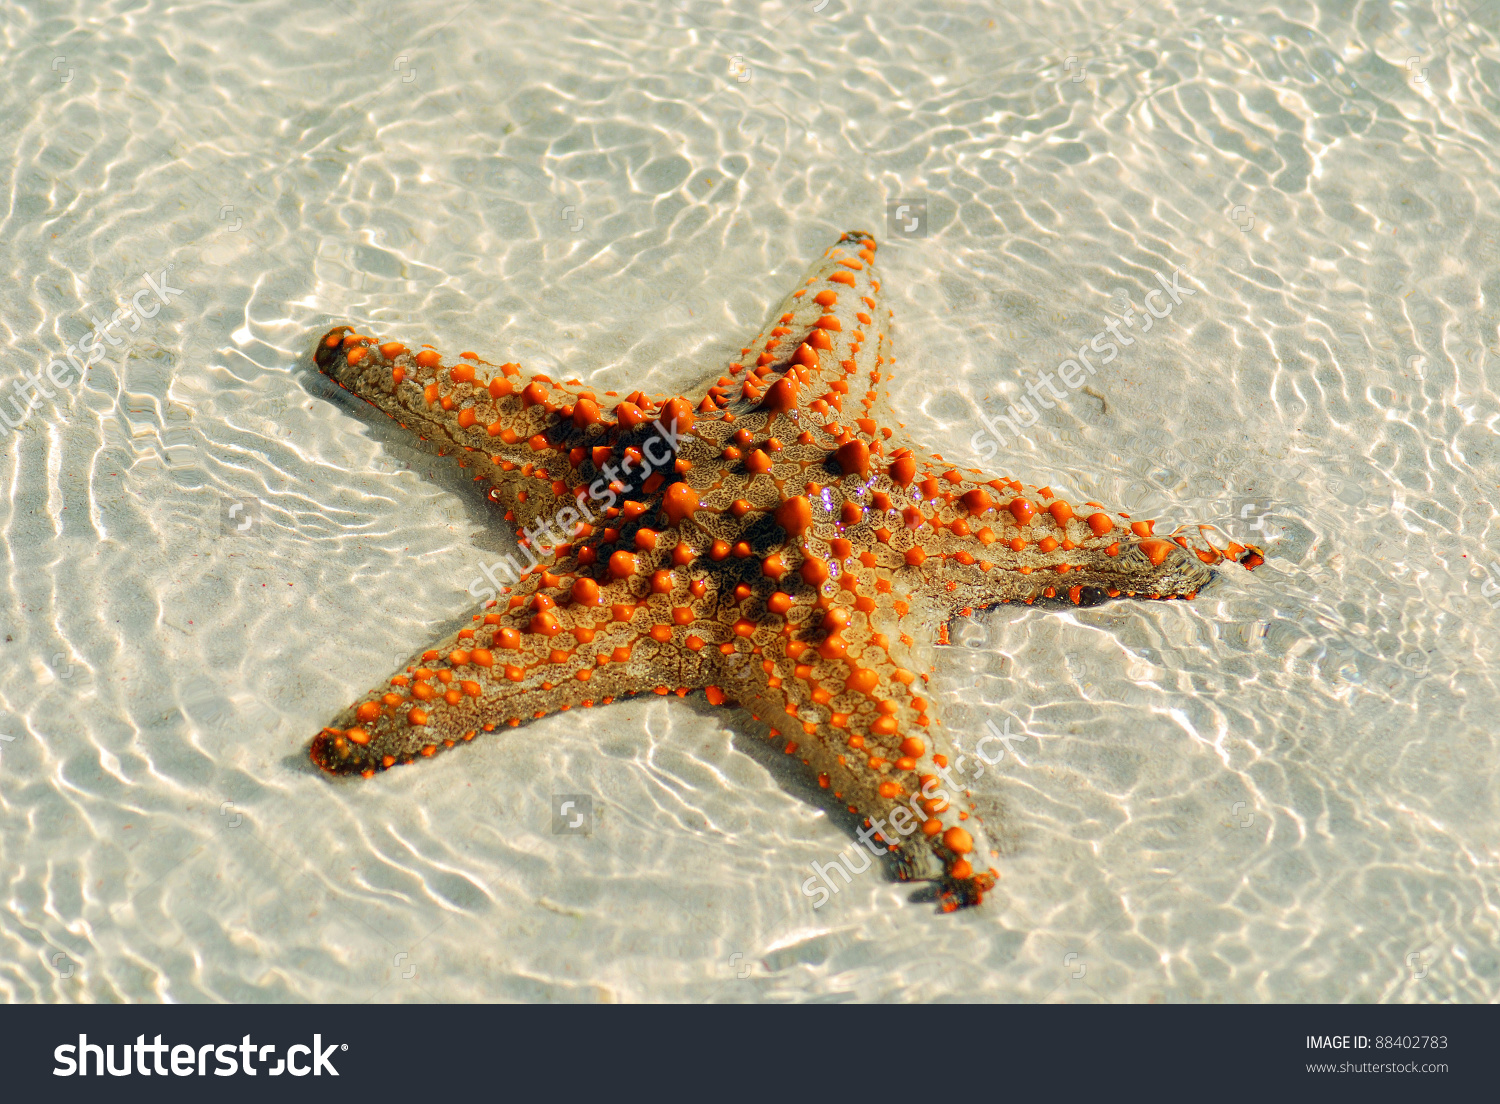 Zanzibar Tanzania Starfish Sea Stars Echinoderms Stock Photo.